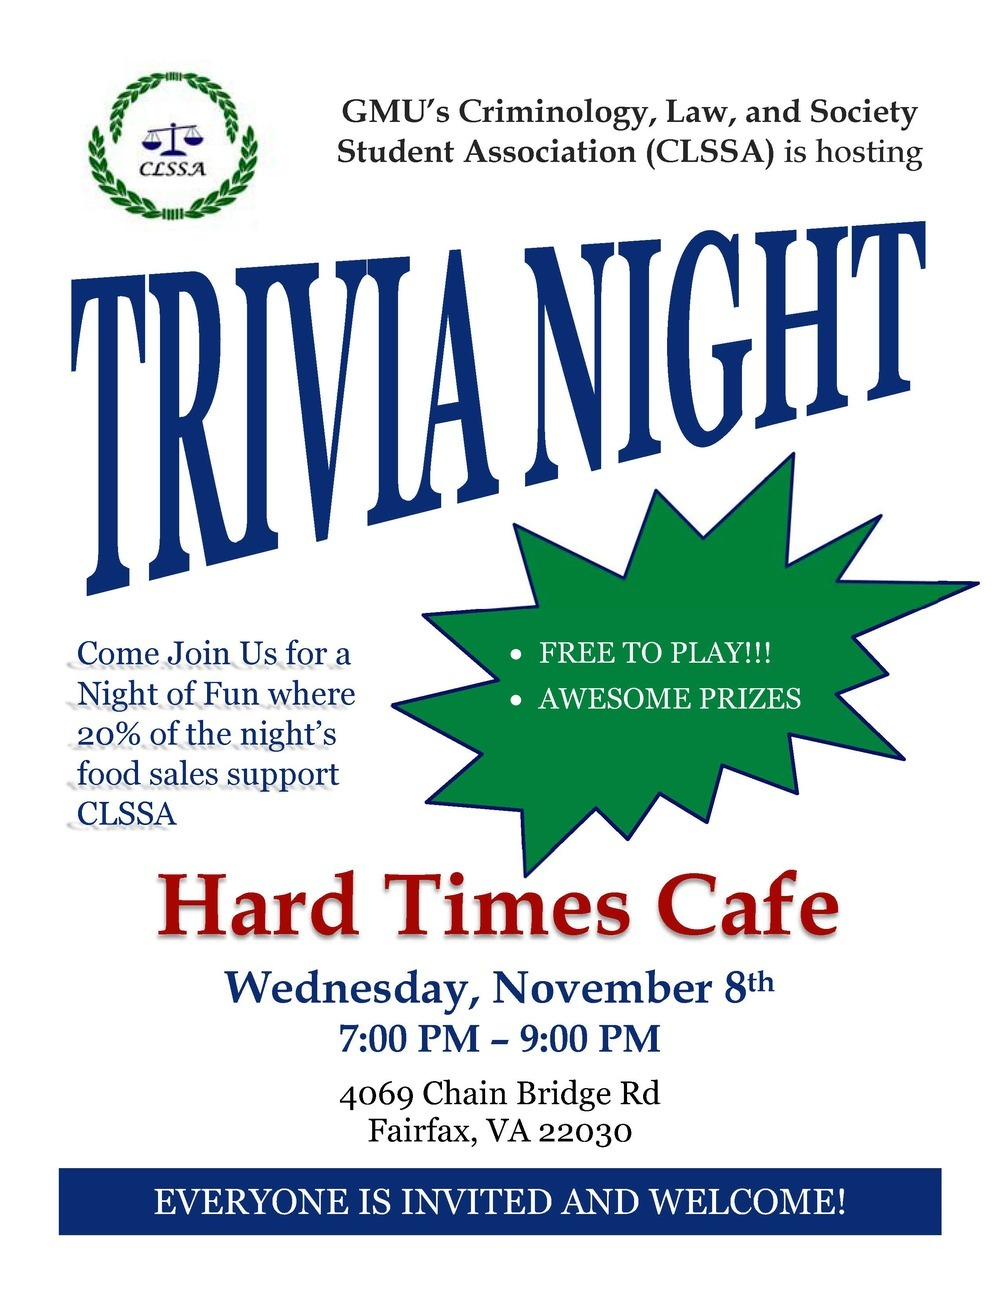 Trivia night flyer 2017